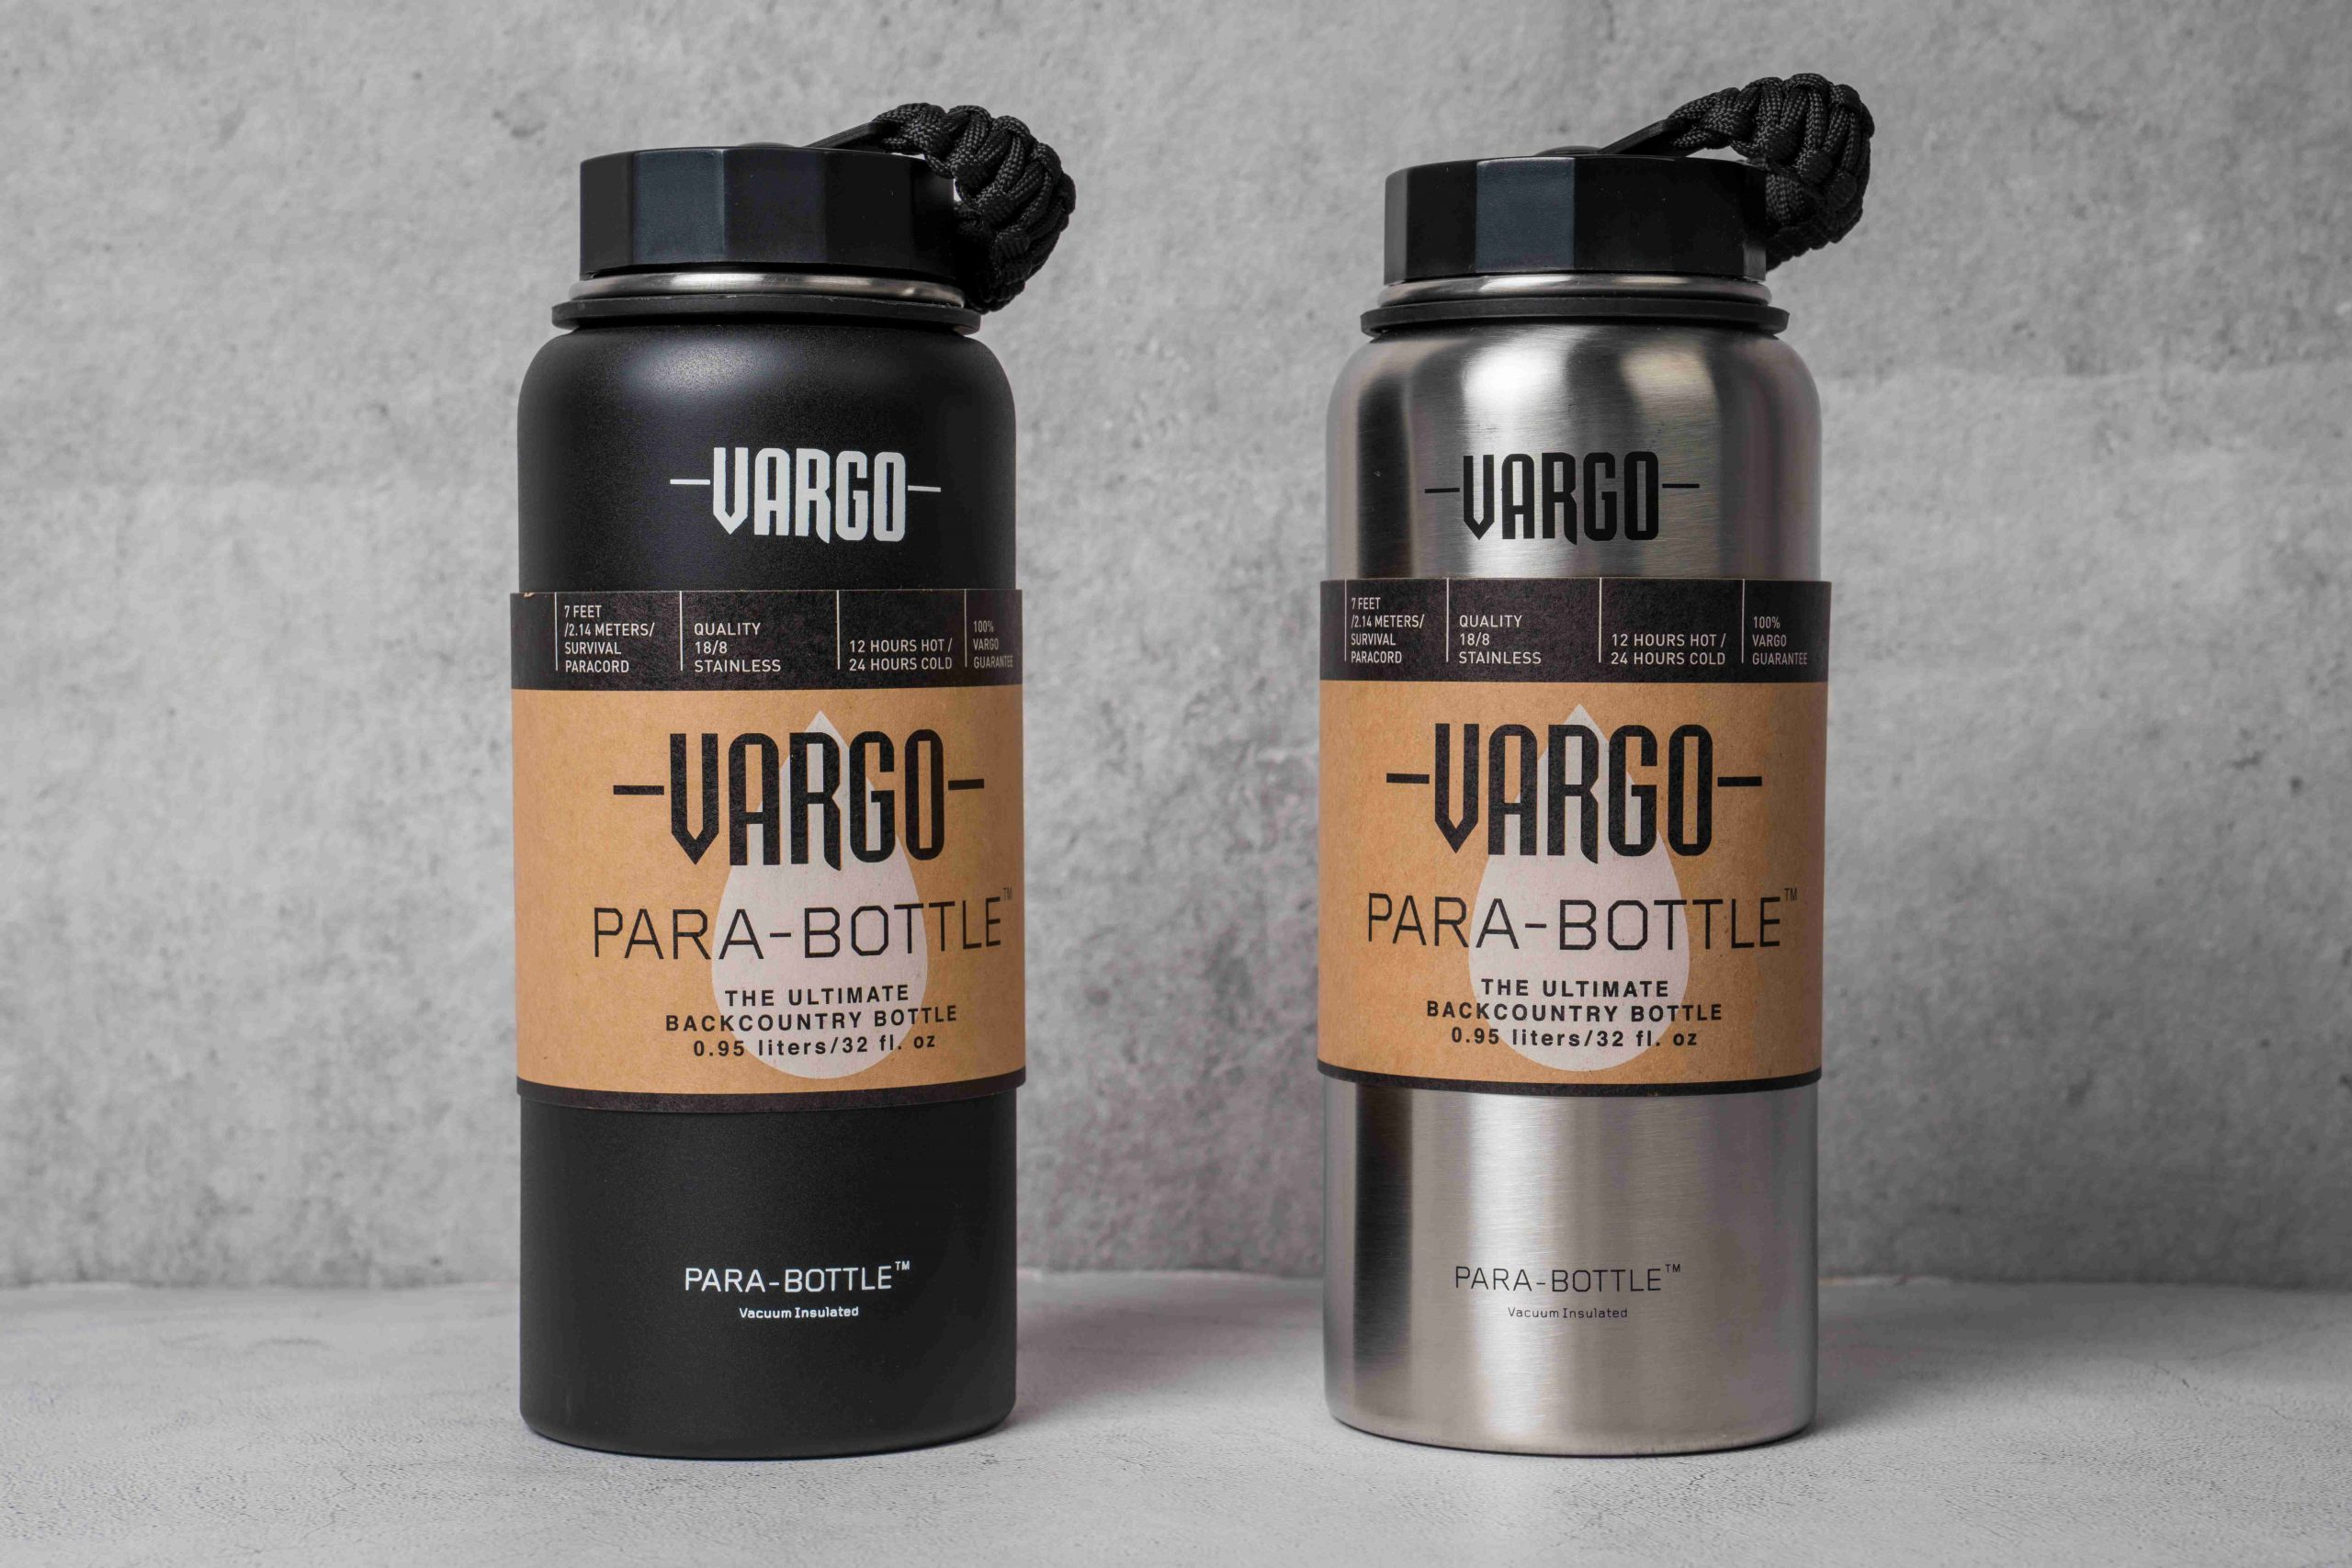 Bình Vargo Insulated Para-Bottle